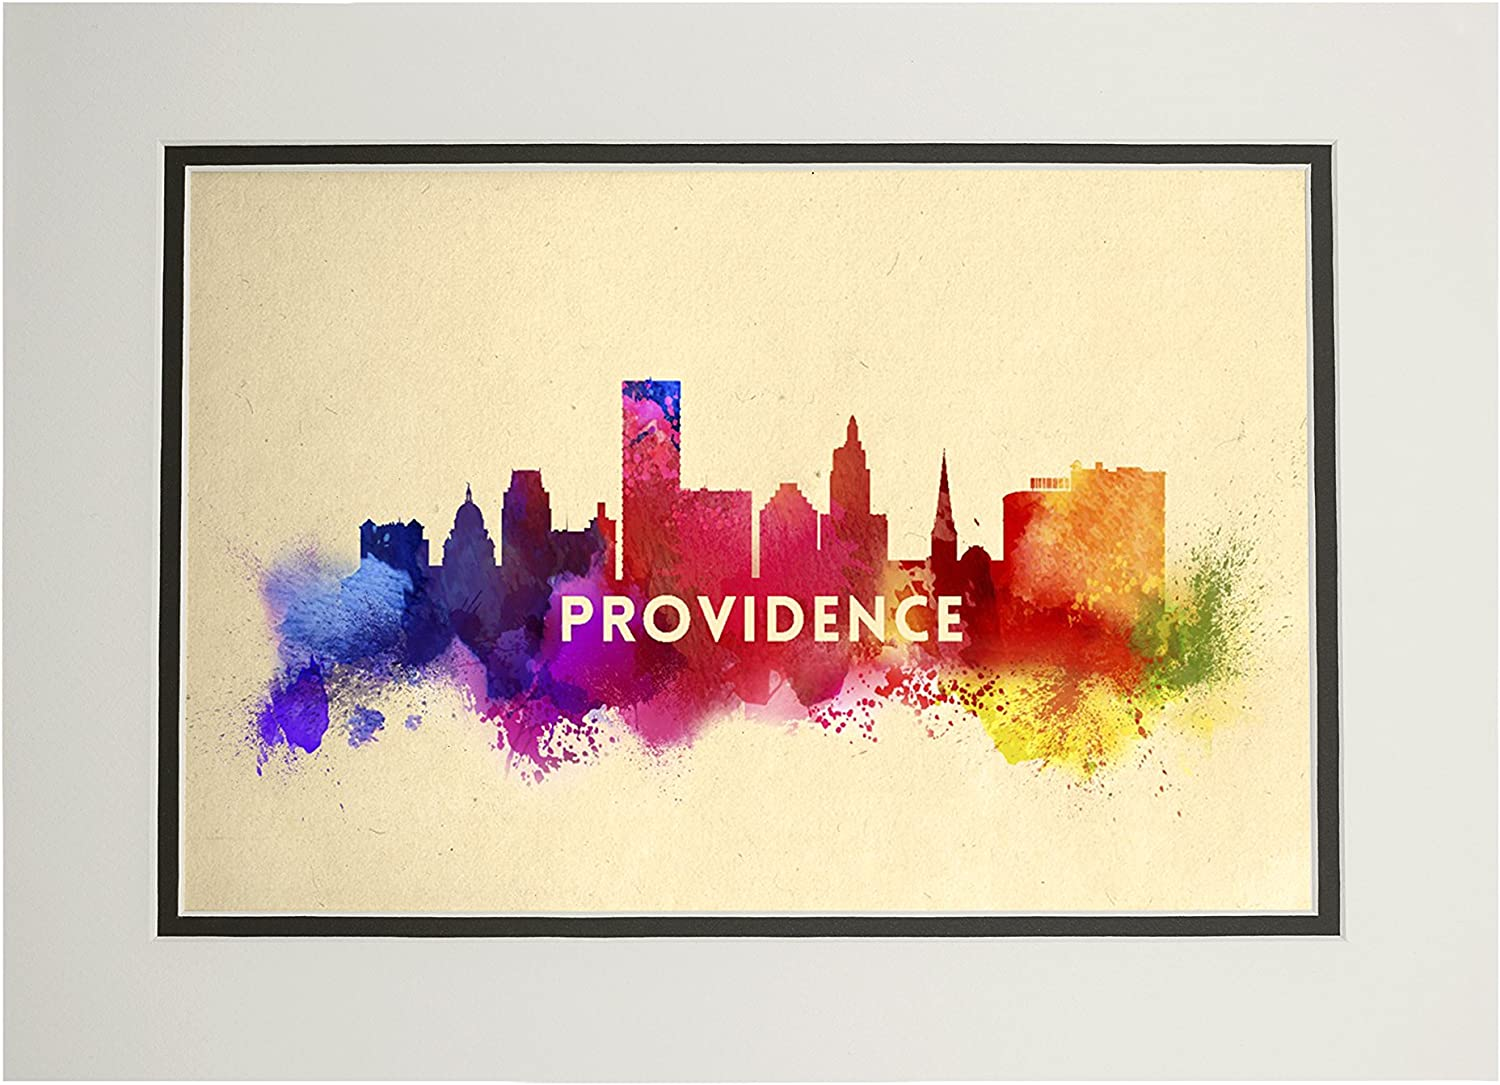 Amazon Com Providence Rhode Island Skyline Abstract 11x14 Double Matted Art Print Wall Decor Ready To Frame Posters Prints